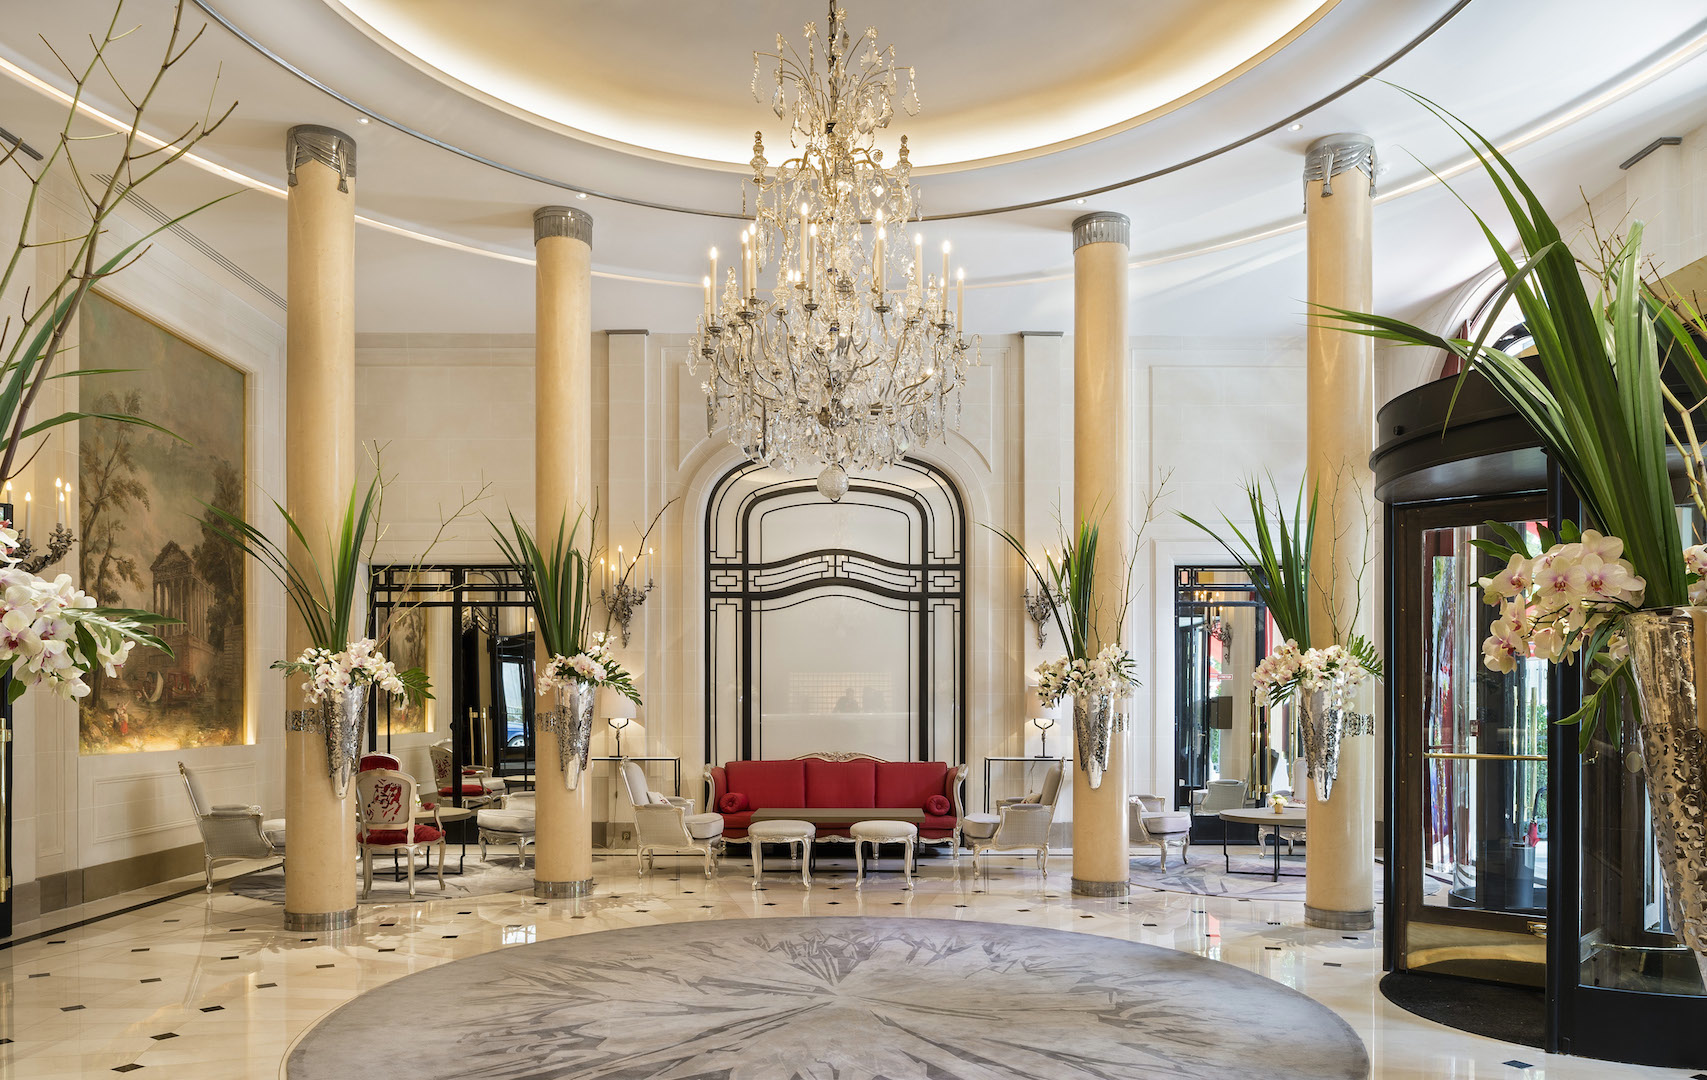 Plaza ath n e the most romantic hotel in parisfashionela for Parigi hotel design